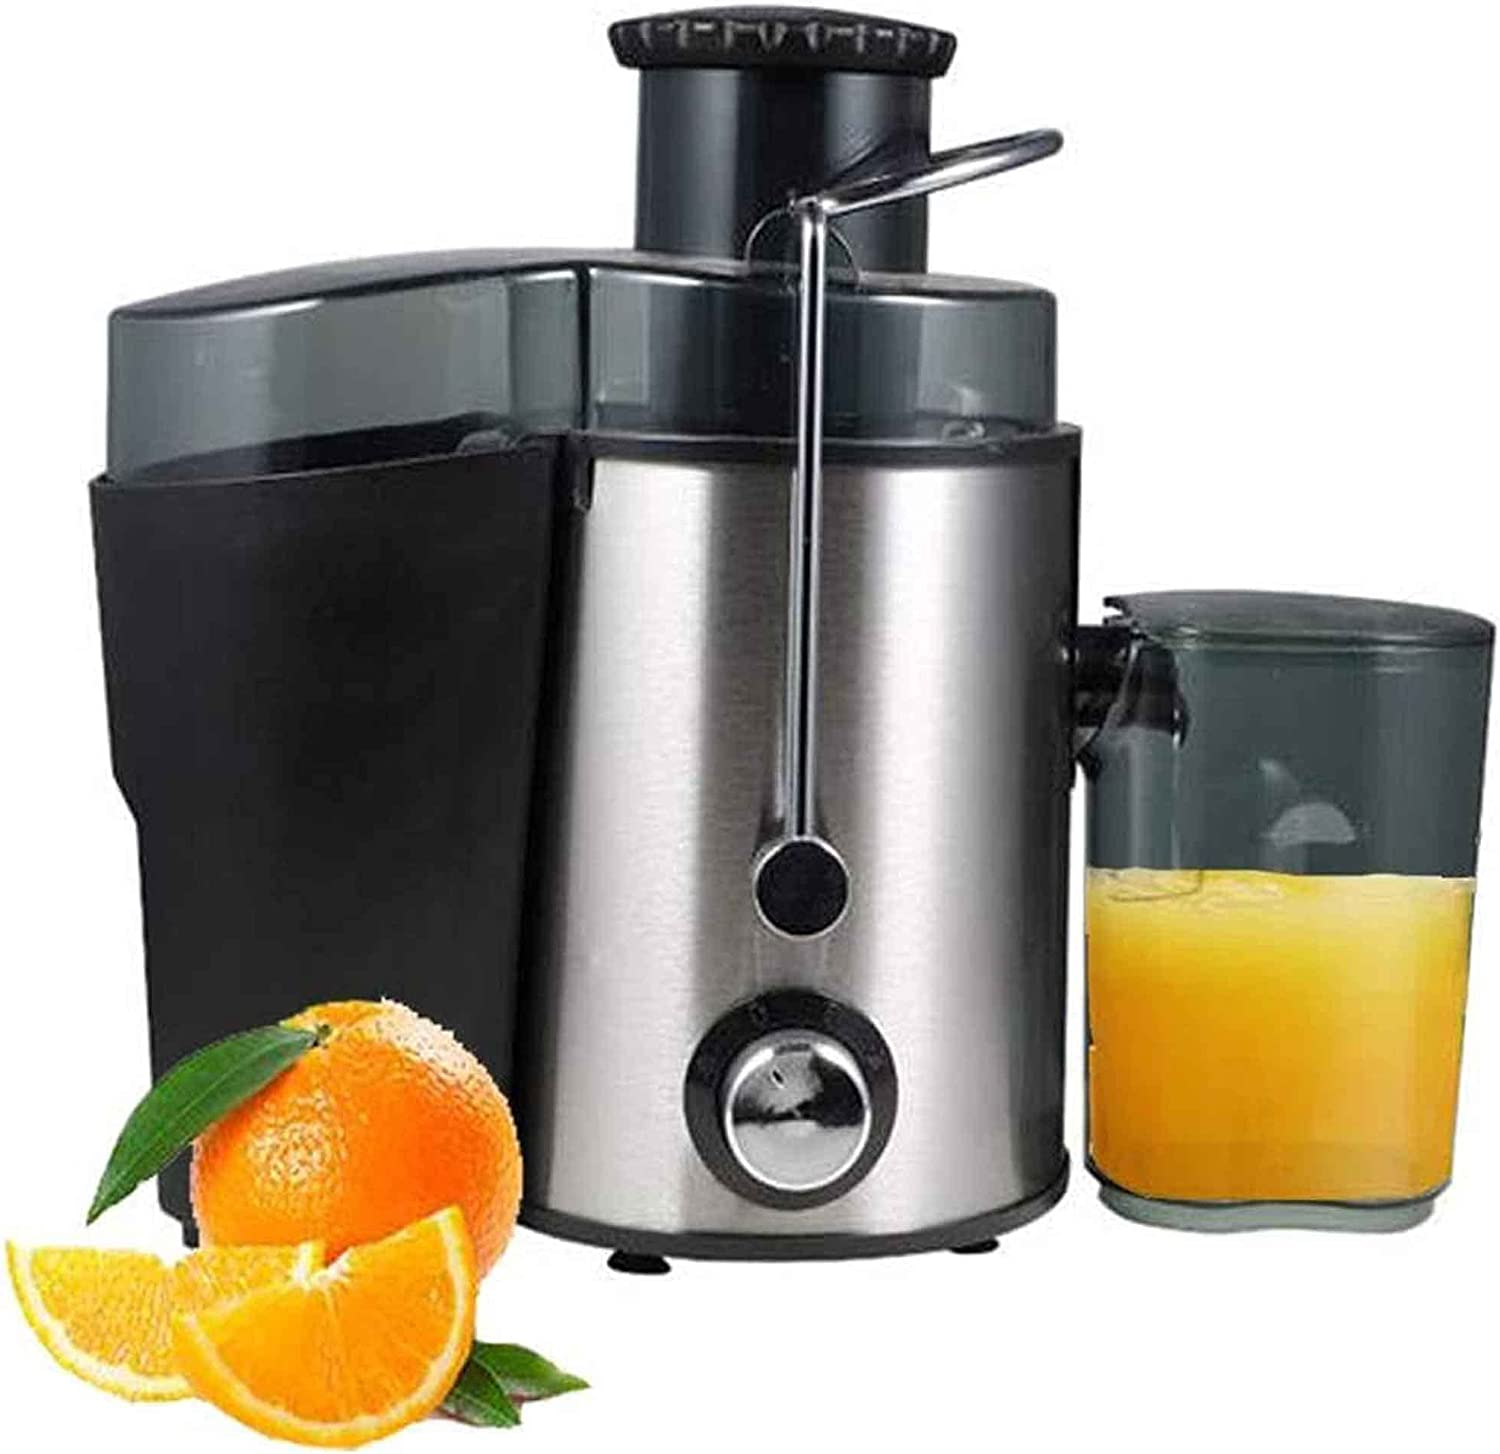 Juicer Machines 800W Multifunctional Household Multi-function Juice Extractor 500 ML Slag Cup Electric Juicer Personal Blender for Fruits Vegetables Mama's Choice Food Processor